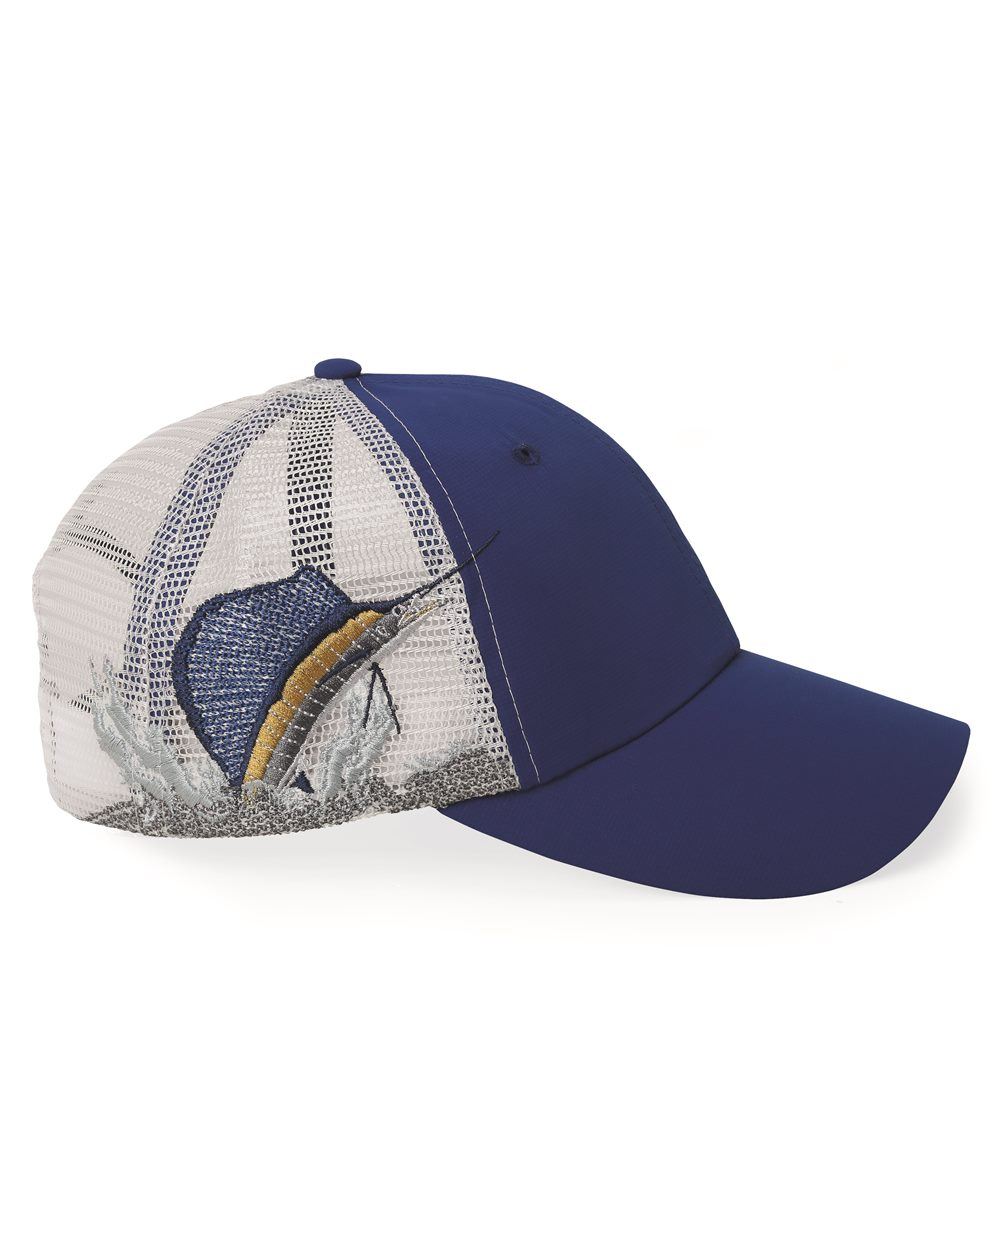 DRI DUCK 3455 - Sailfish Performance Mesh Cap